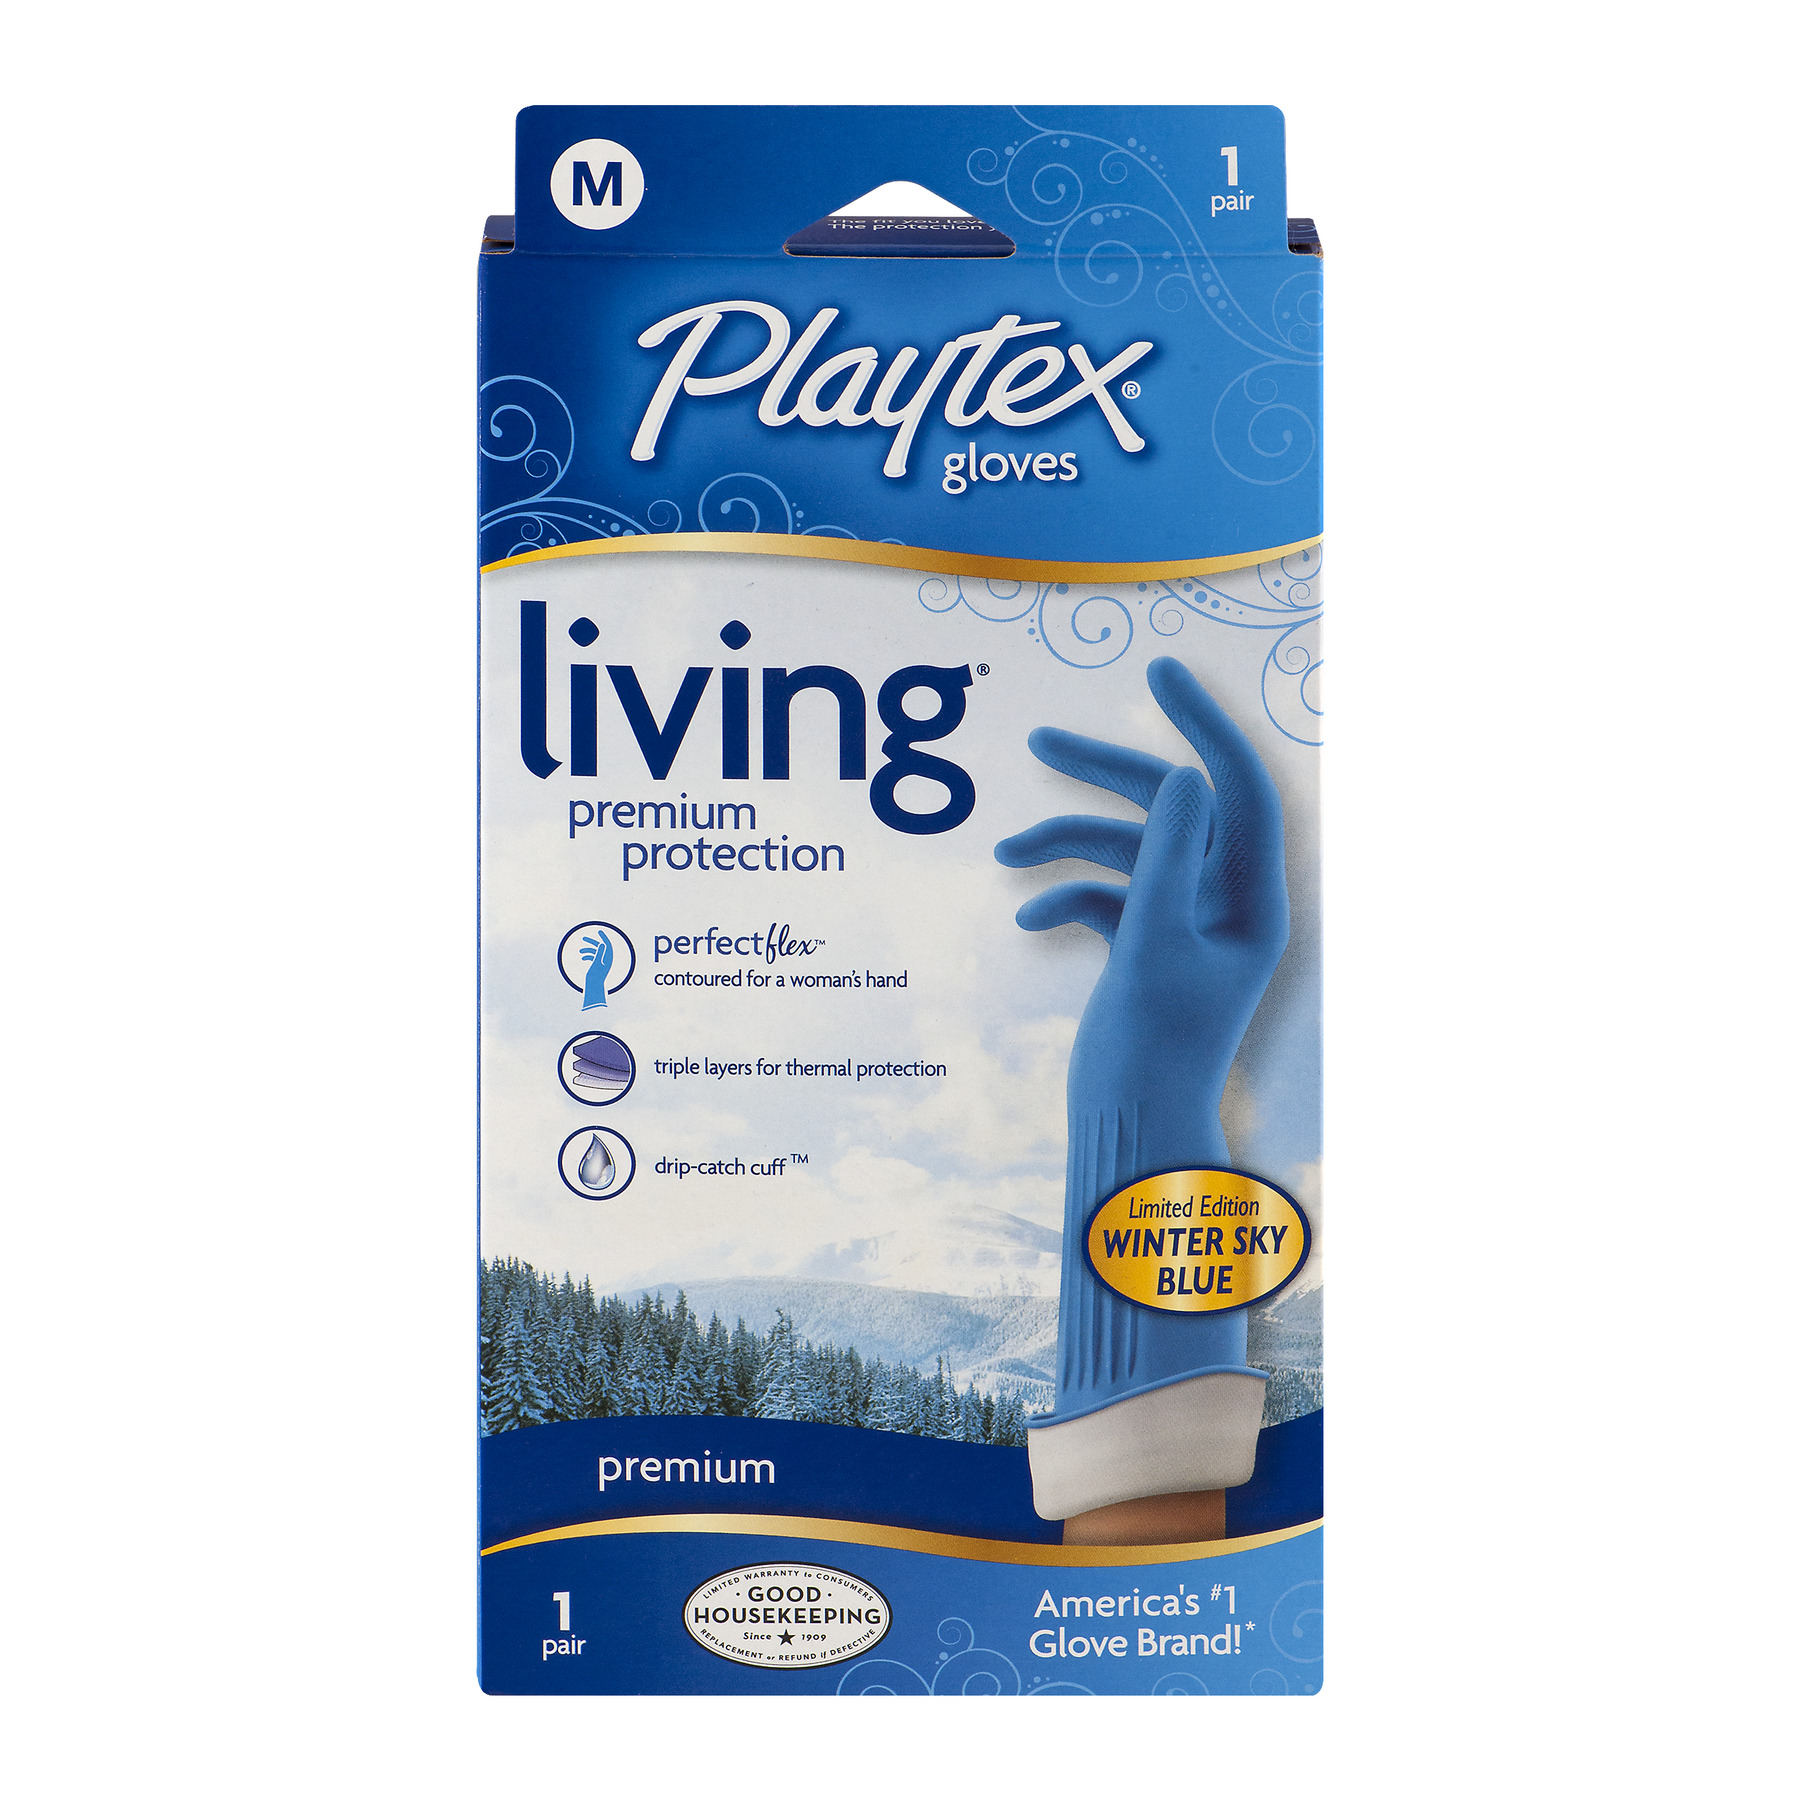 Playtex Living Reusable Gloves With Drip-Catch Cuff Medium - 1 Pair